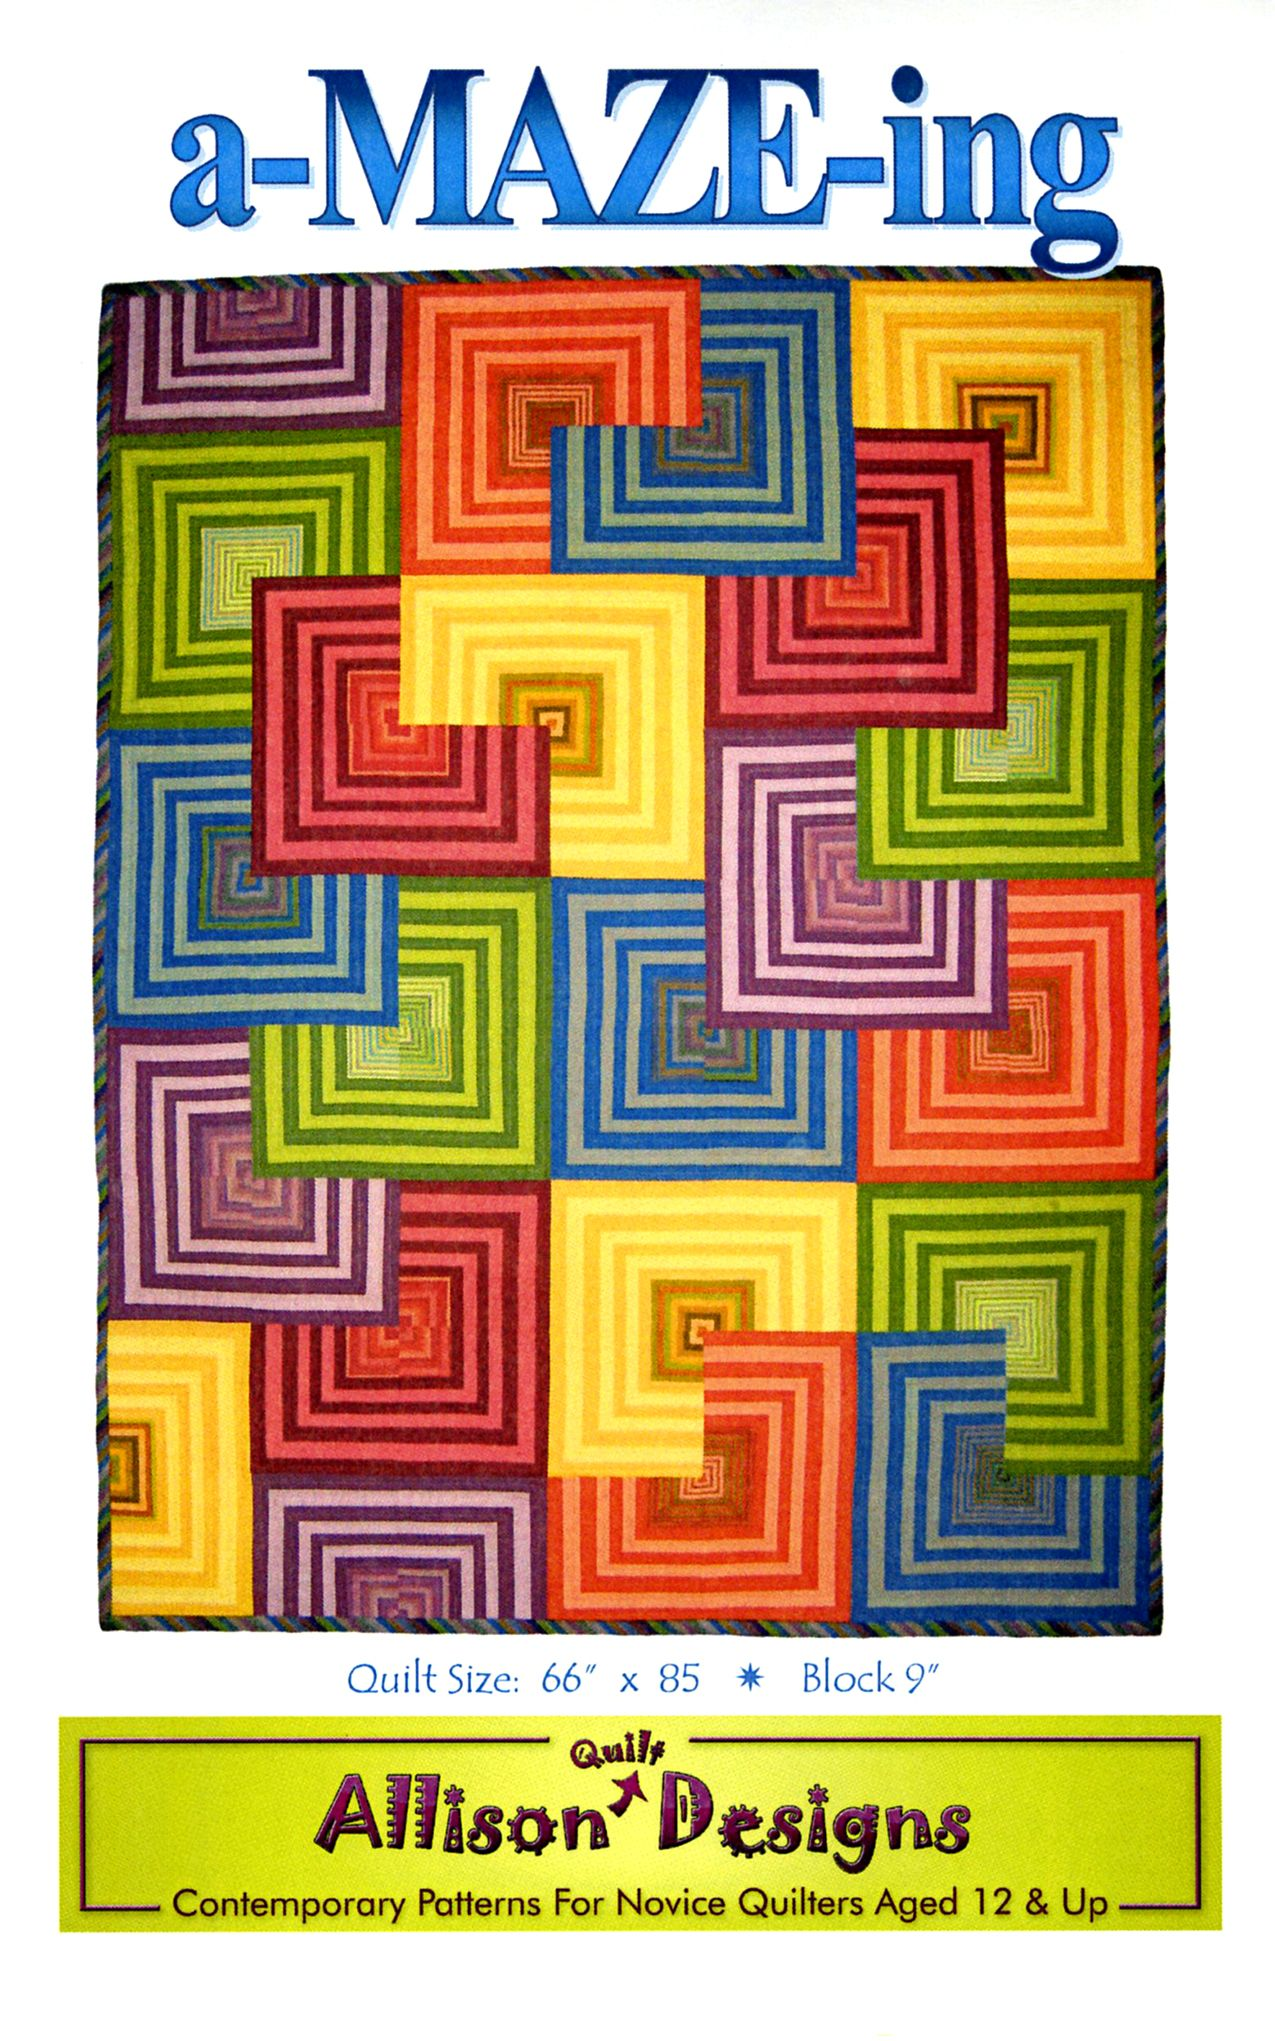 A-Maze-ing By Allison, Lori  - Modern geometric quilt showcasing color saturated shot cottons. Inspired by Tara Faughnan's nationally exhibited art quilt House Top. Full color & fully illustrated instructions. Finished size 66in x 85in.